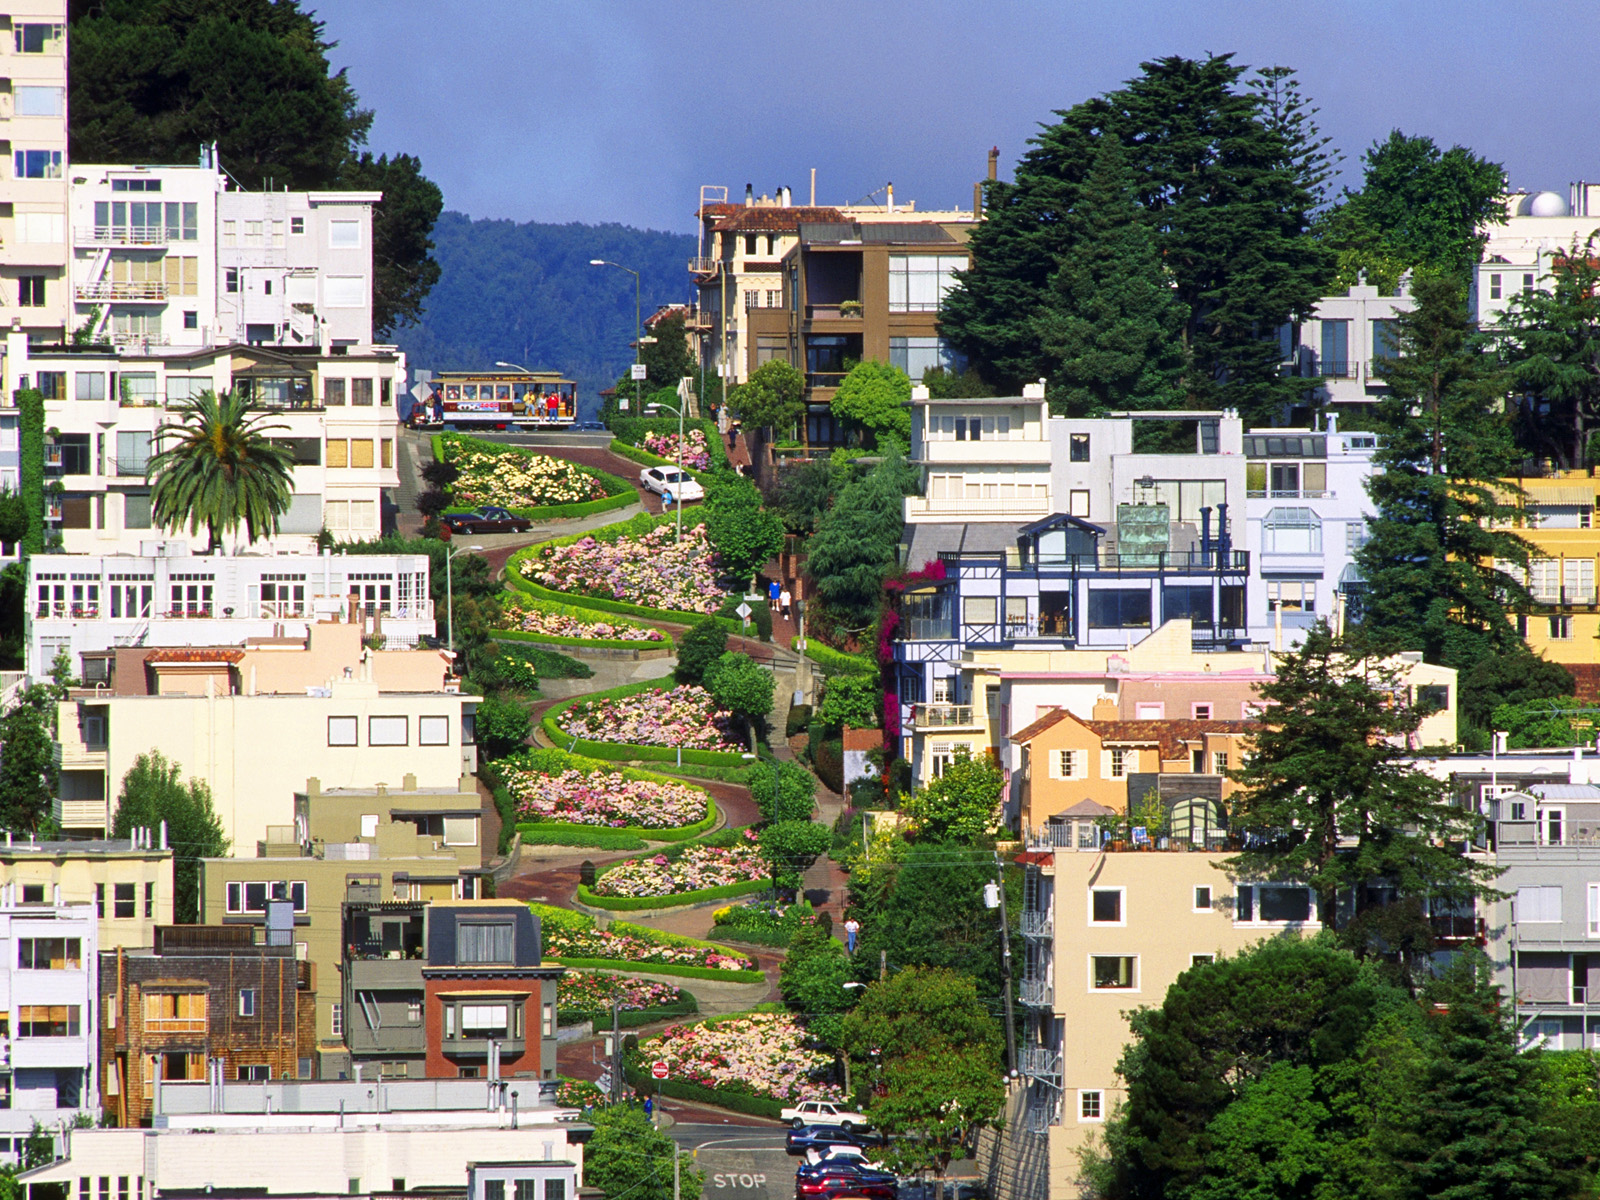 Axford House San Francisco, Zig zag in San Francisco's Lombard Street | Planning road trip ...